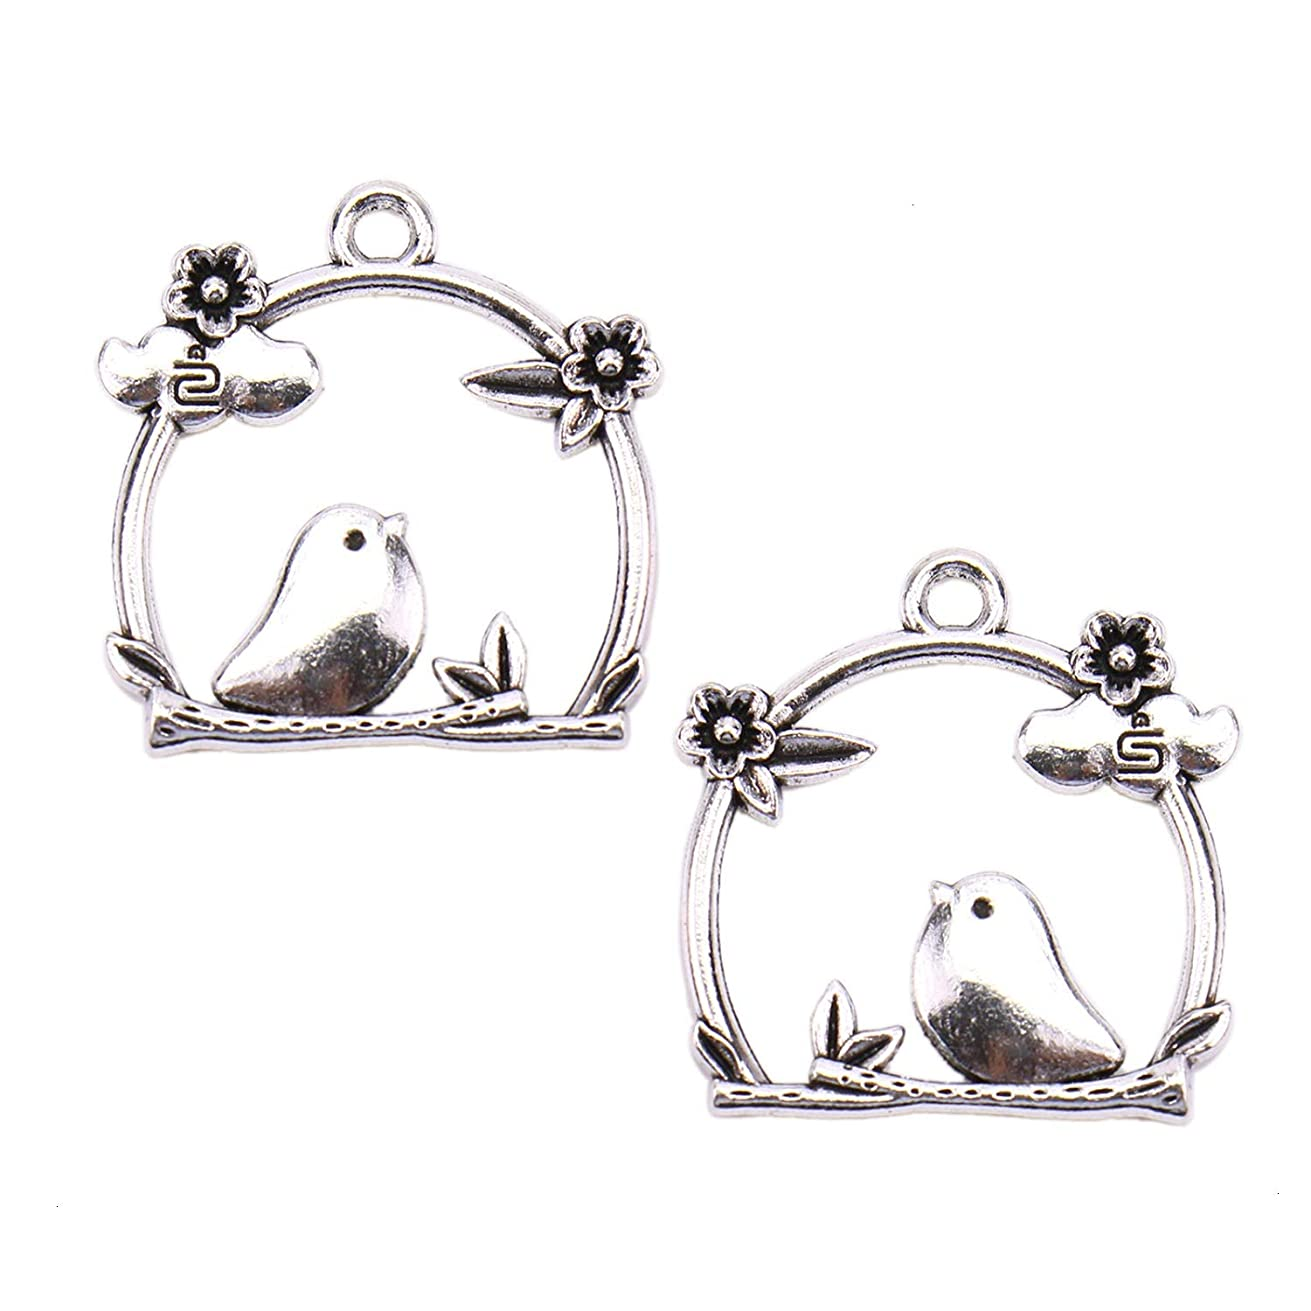 Monrocco 40Pcs Bird Cage Flower Charms Pendant Jewelry Findings for Jewelry Making Necklace and Bracelet (Antique Silver)